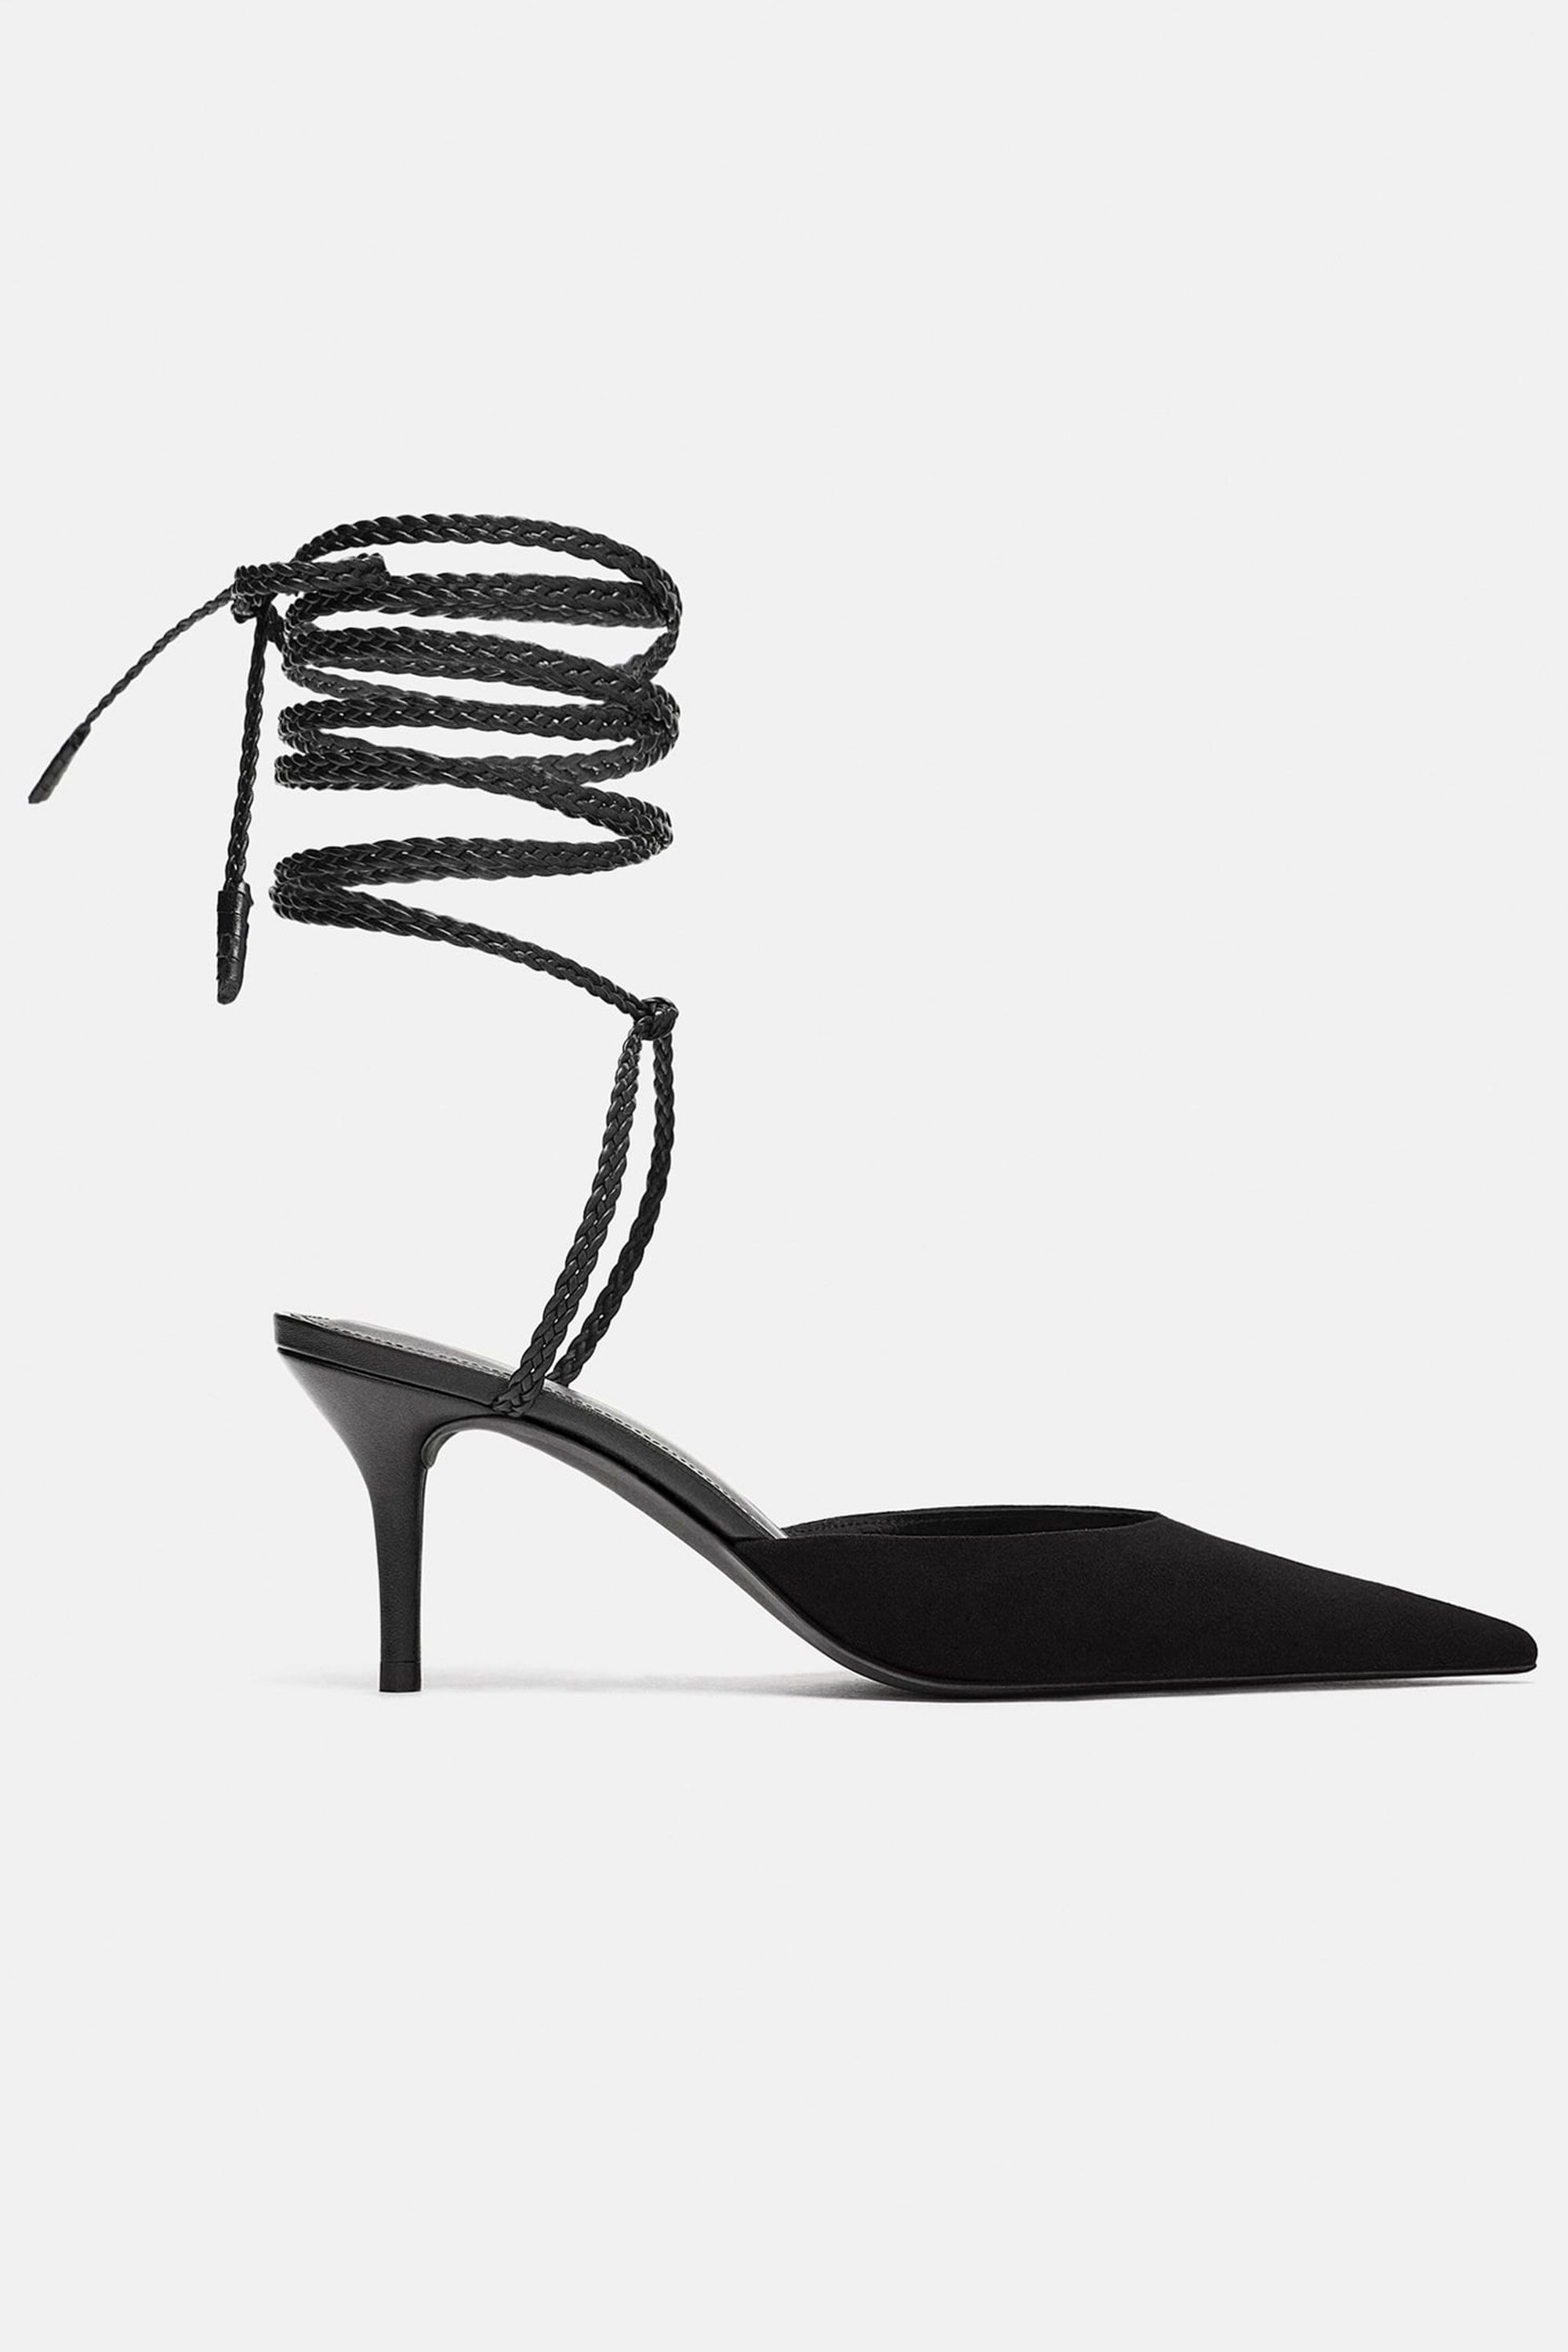 2000x3000 The Best Christmas Party Shoes For Christmas Party Shoe Trends